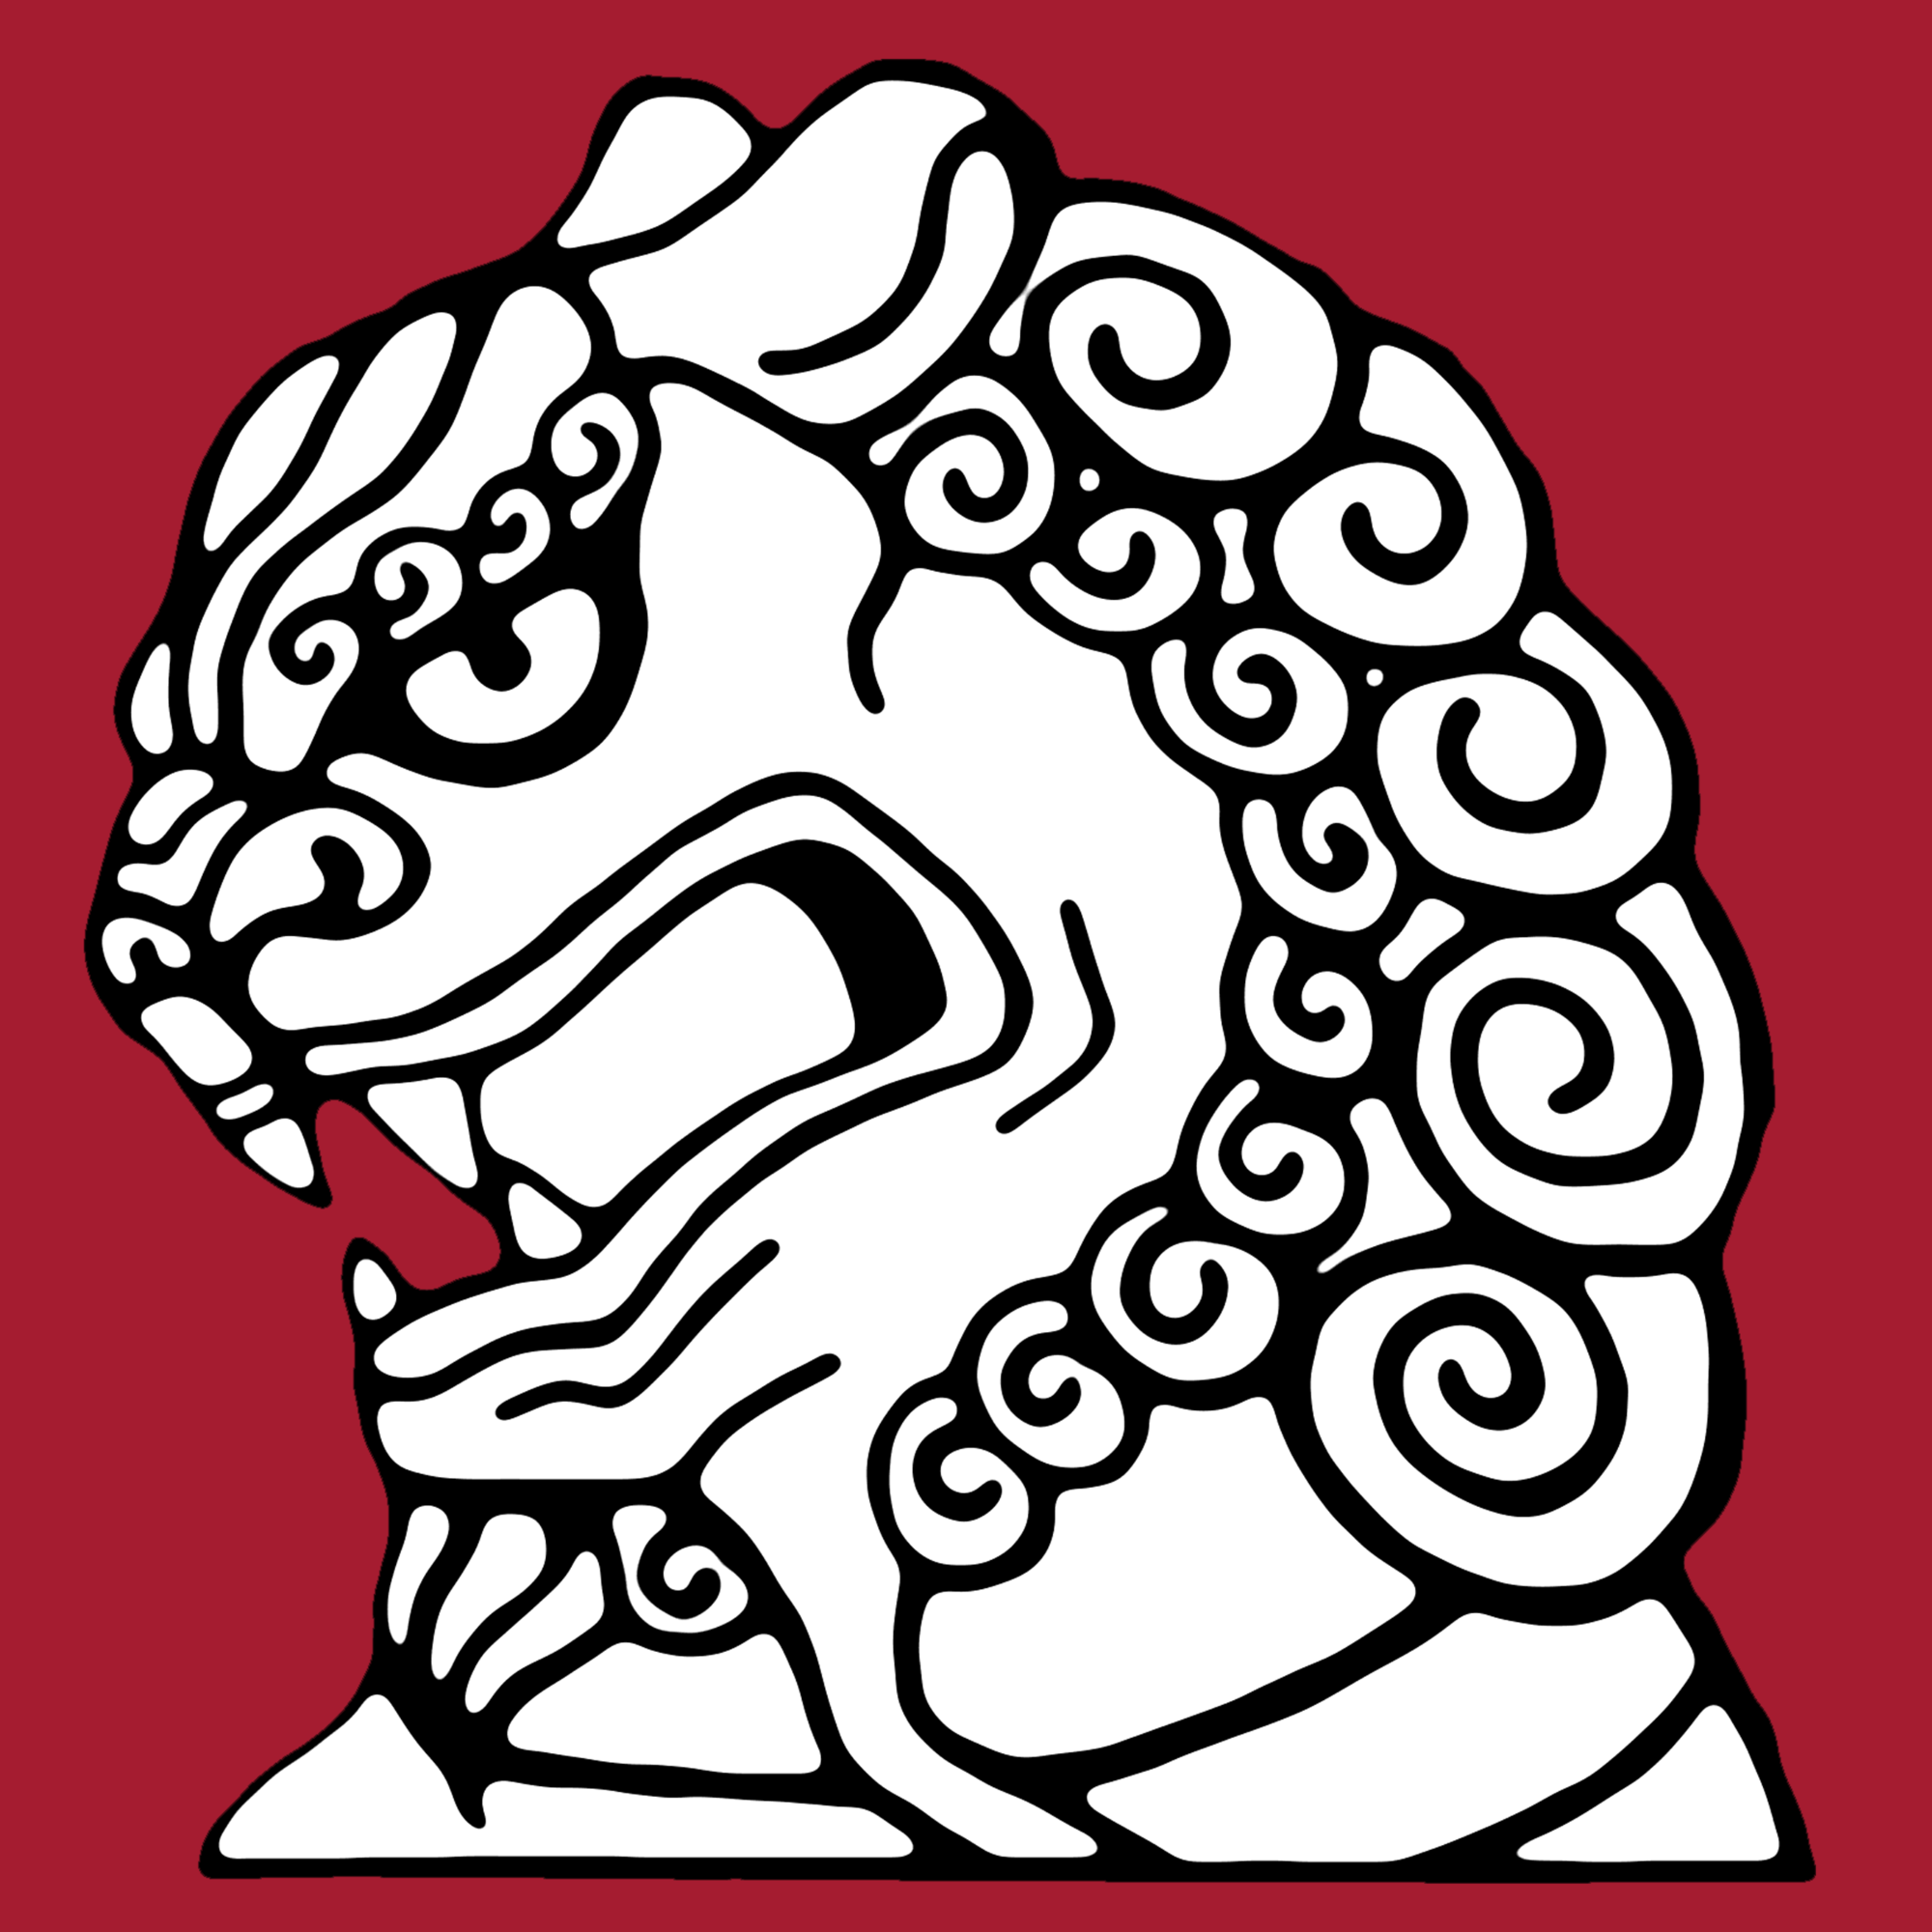 Unofficial EALC logo: a line drawing of a Fu lion in profile, facing left, against a background of deep crimson